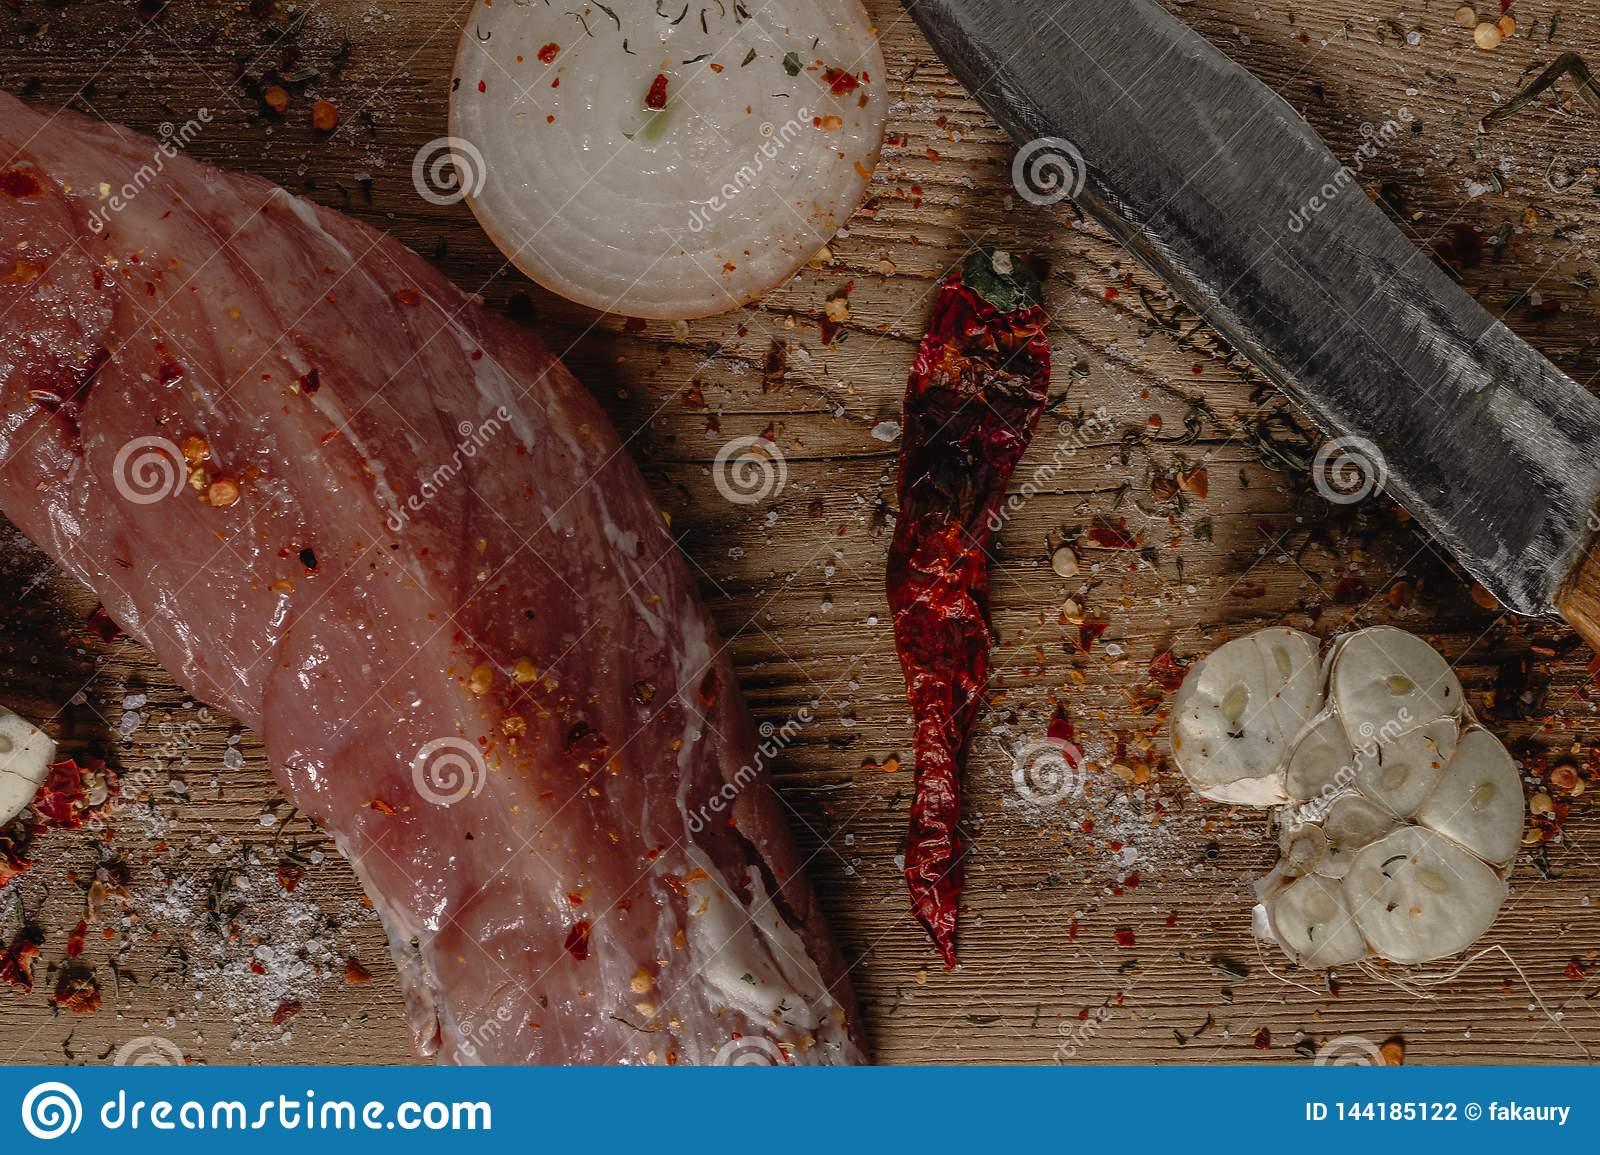 Fresh raw pork tenderloin on wooden cutting board with onion, garlic and knife